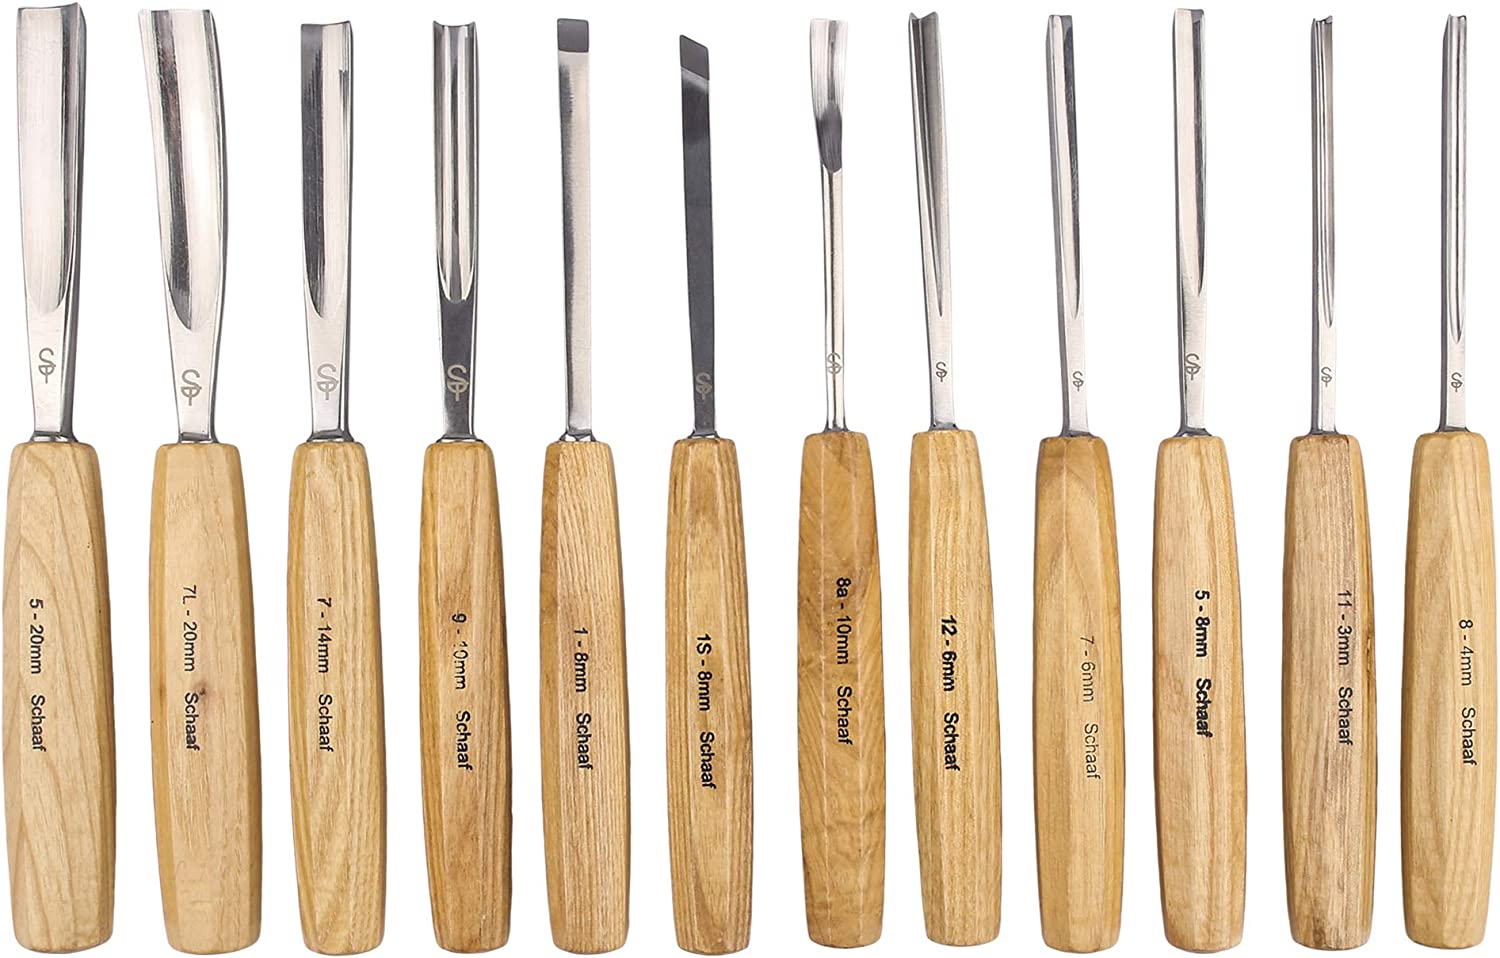 Full Size Wood Carving Tools Set of 12 with Canvas Case Gouges Chisels Beginners